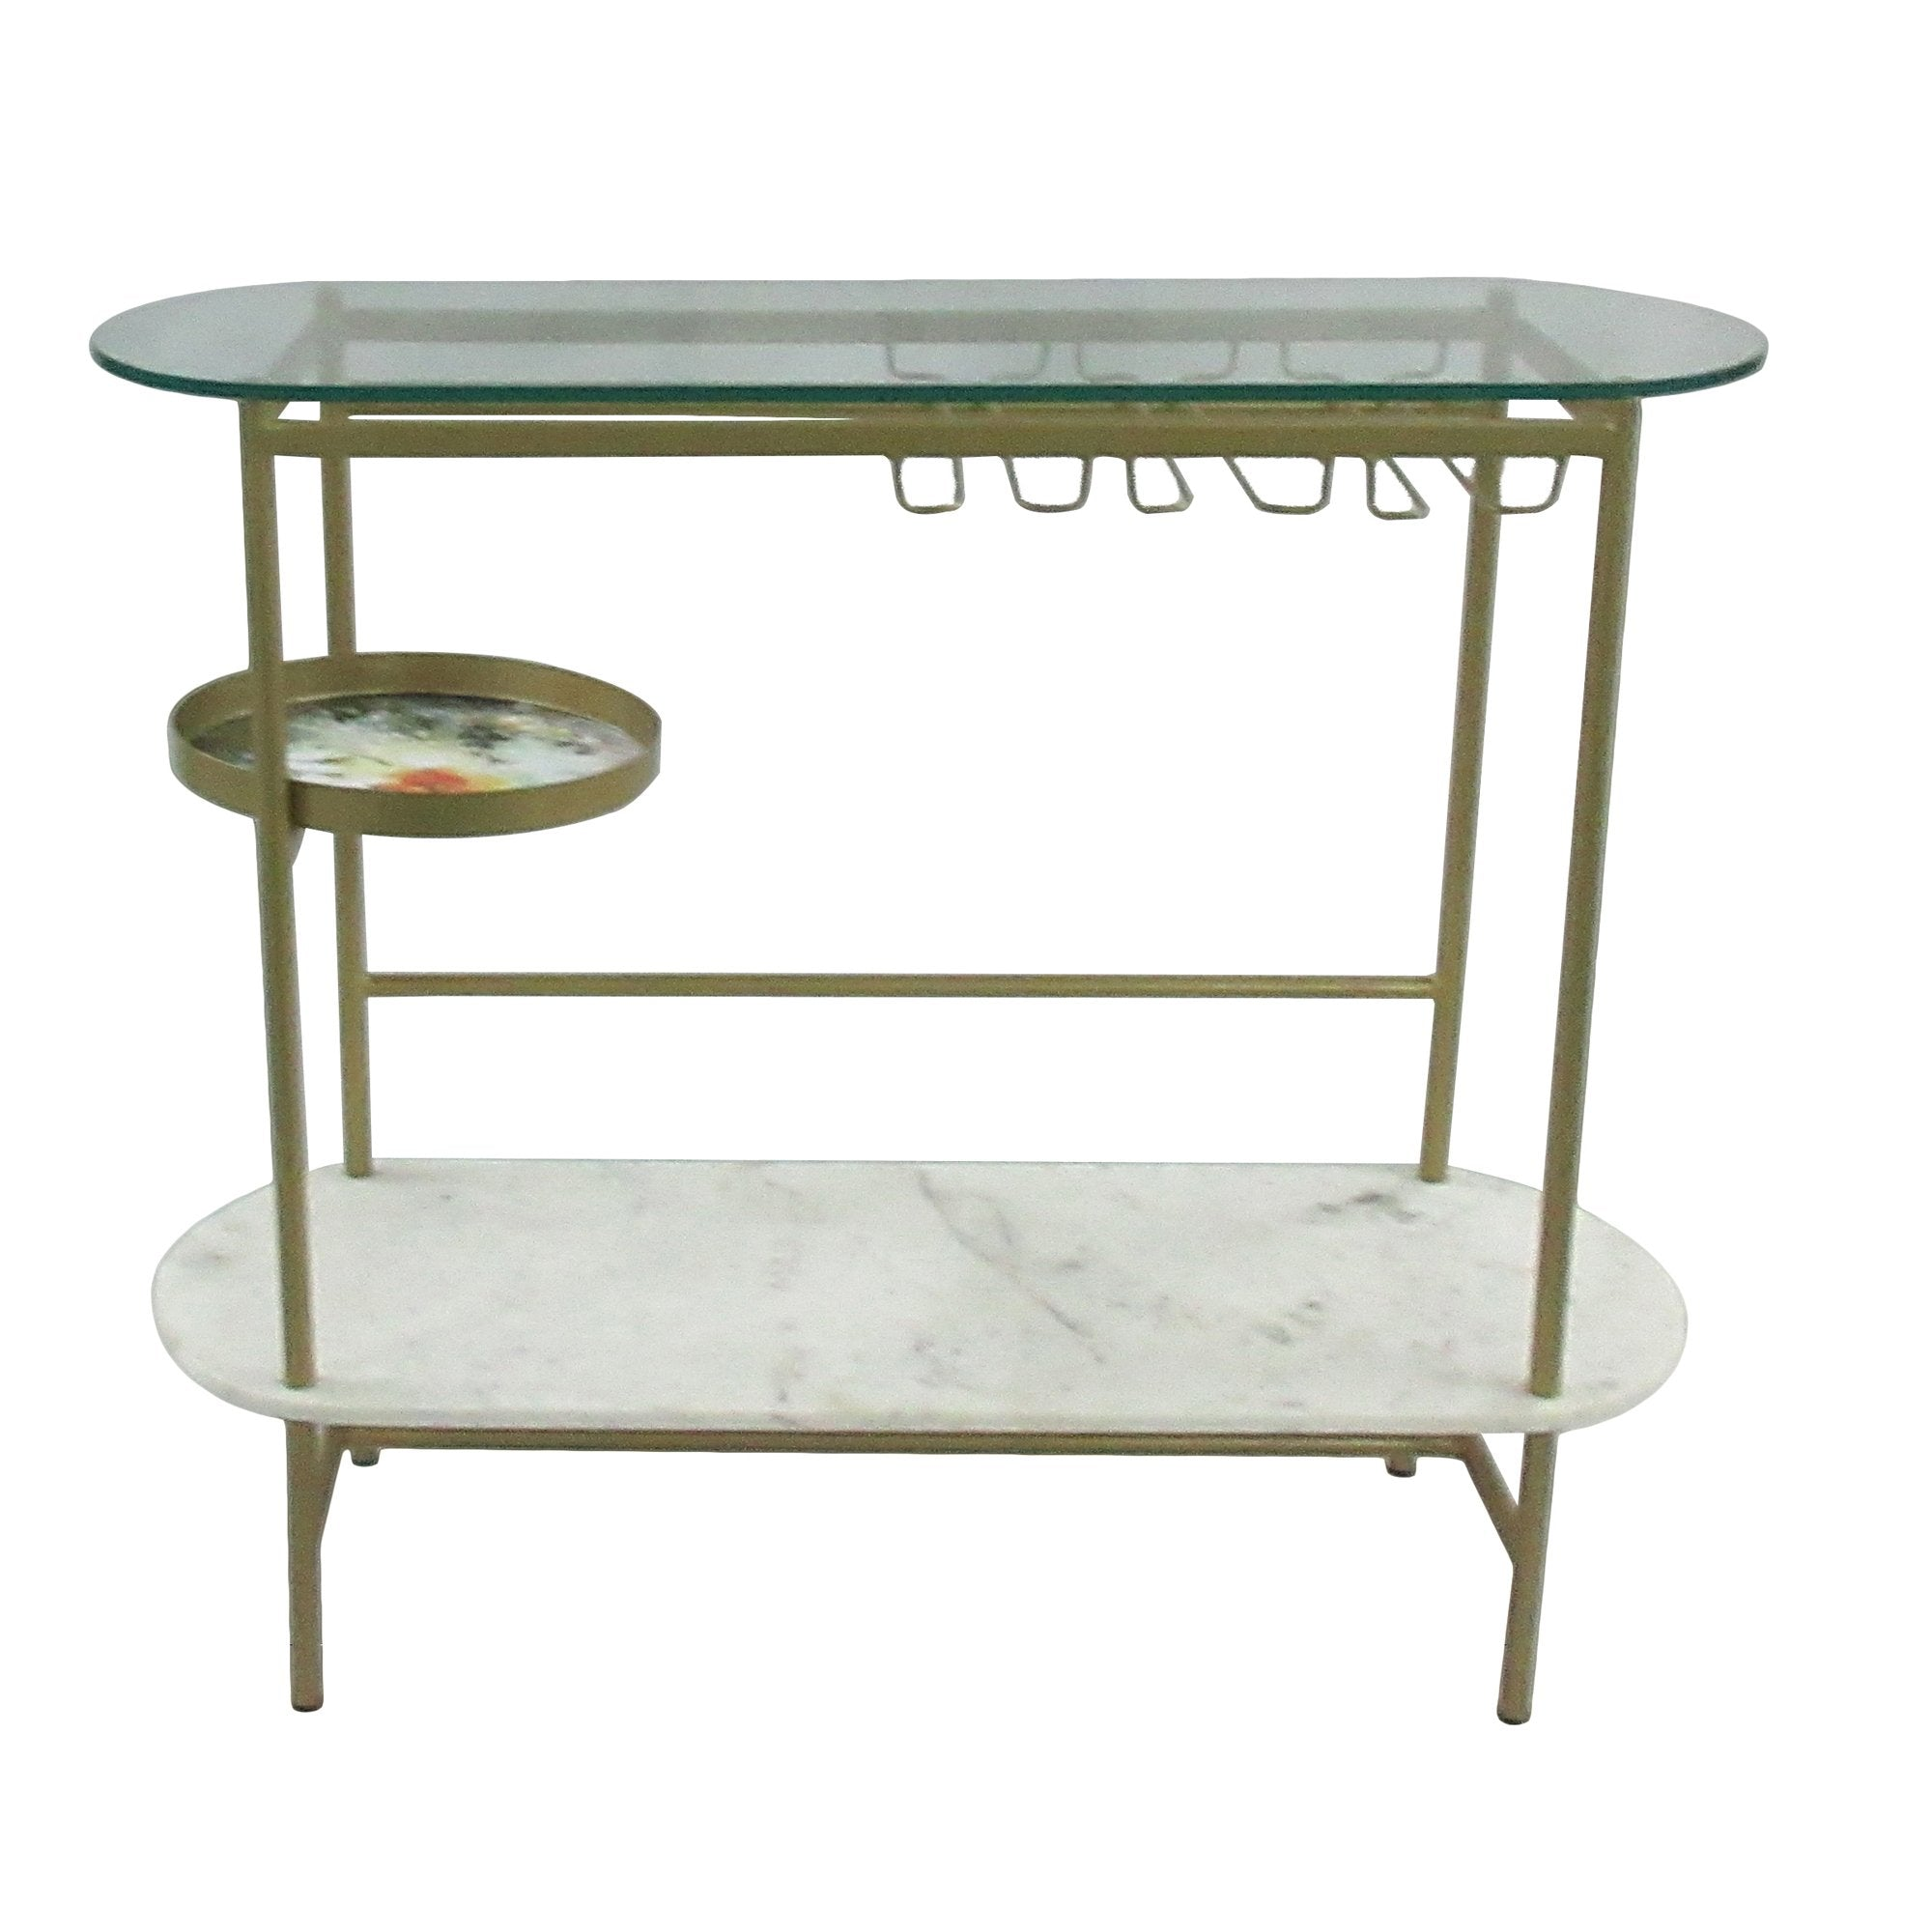 Picture of Earth Wind & Fire Oval Console Table